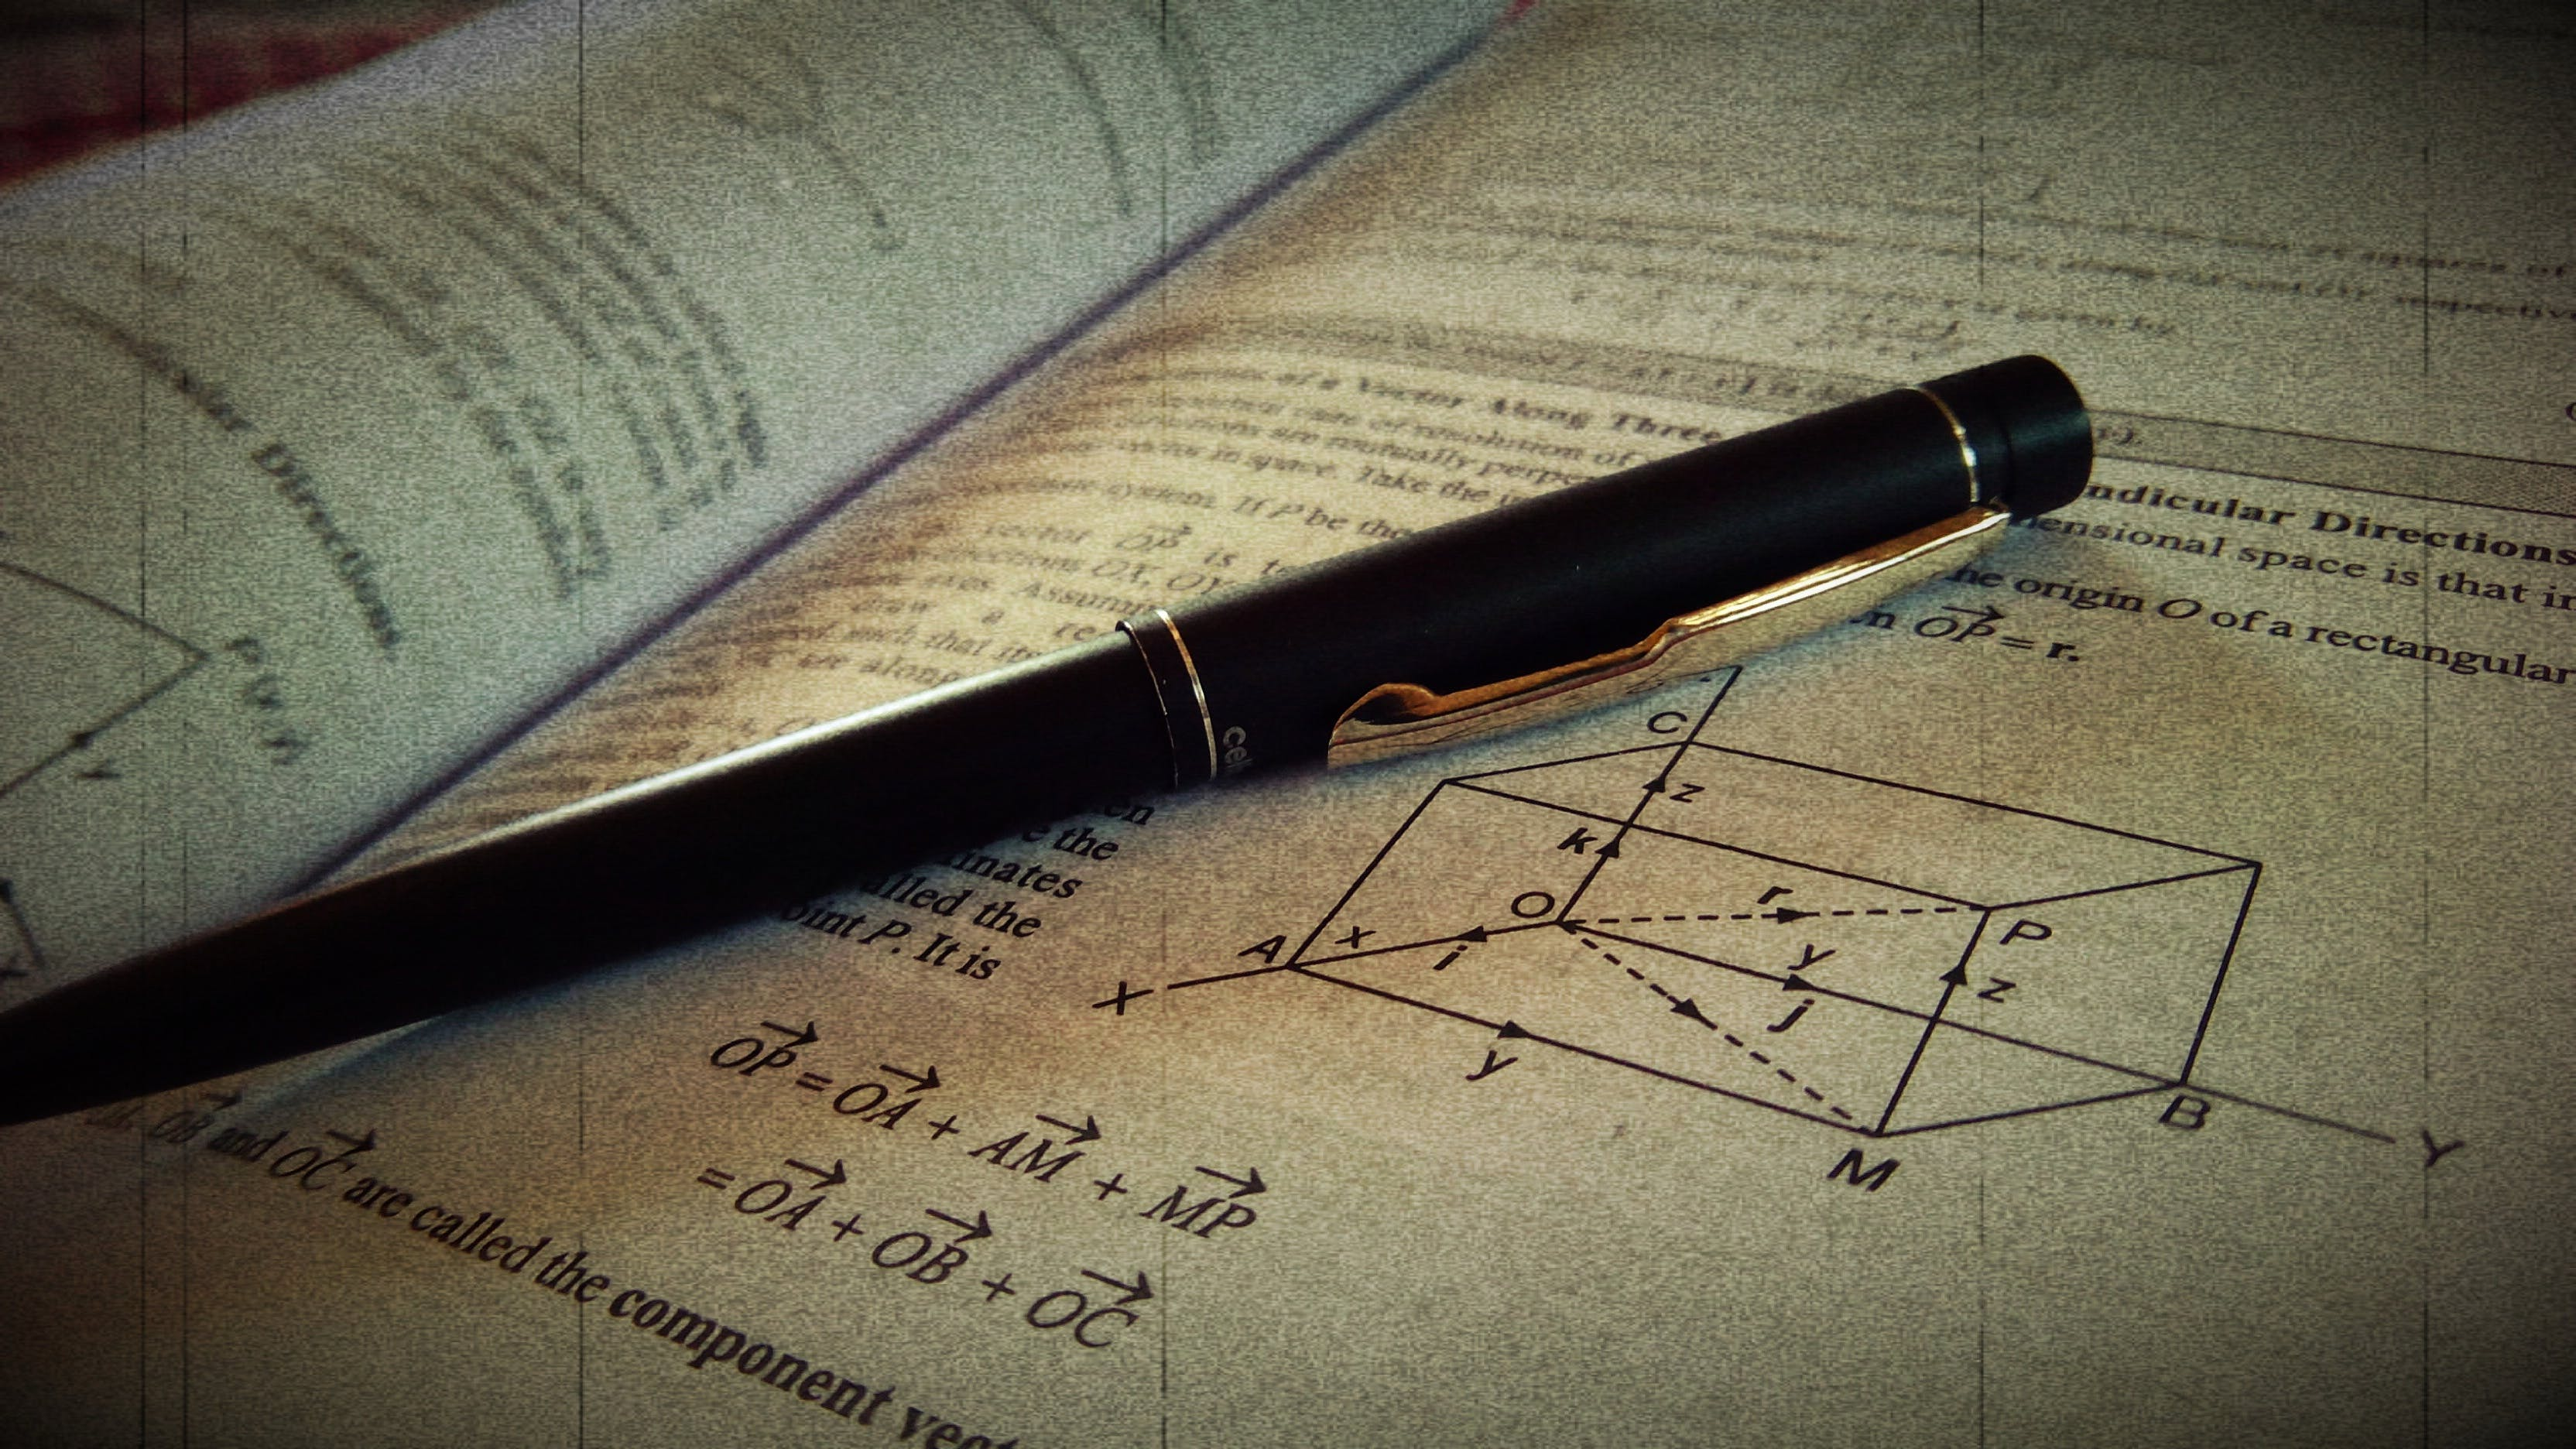 Free stock photo of A vintage art of pen upon paper